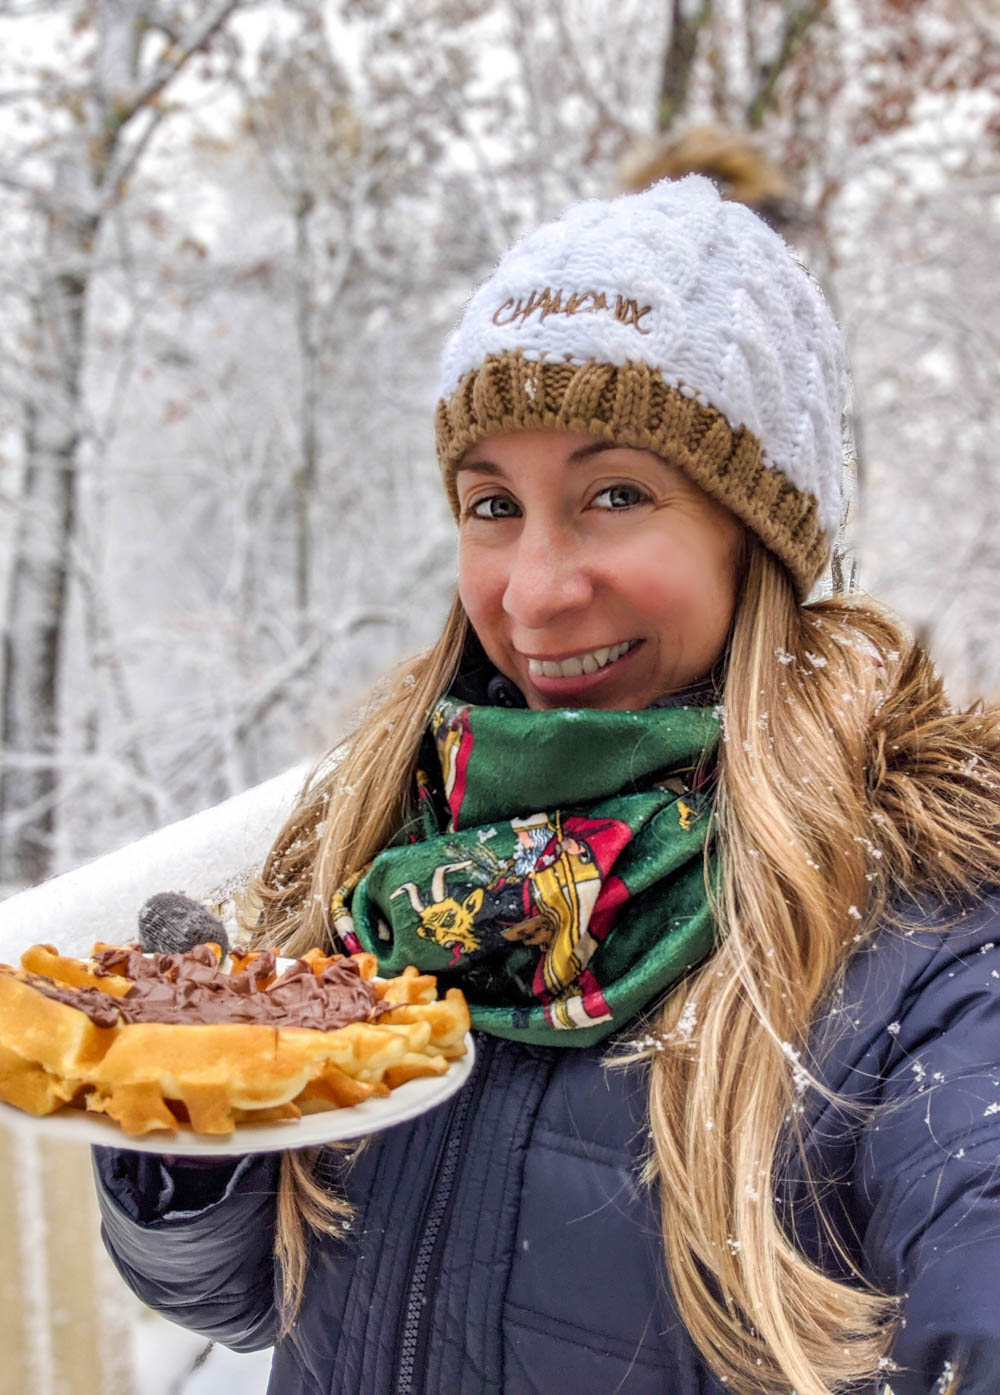 Eating waffles with nutella in the snow